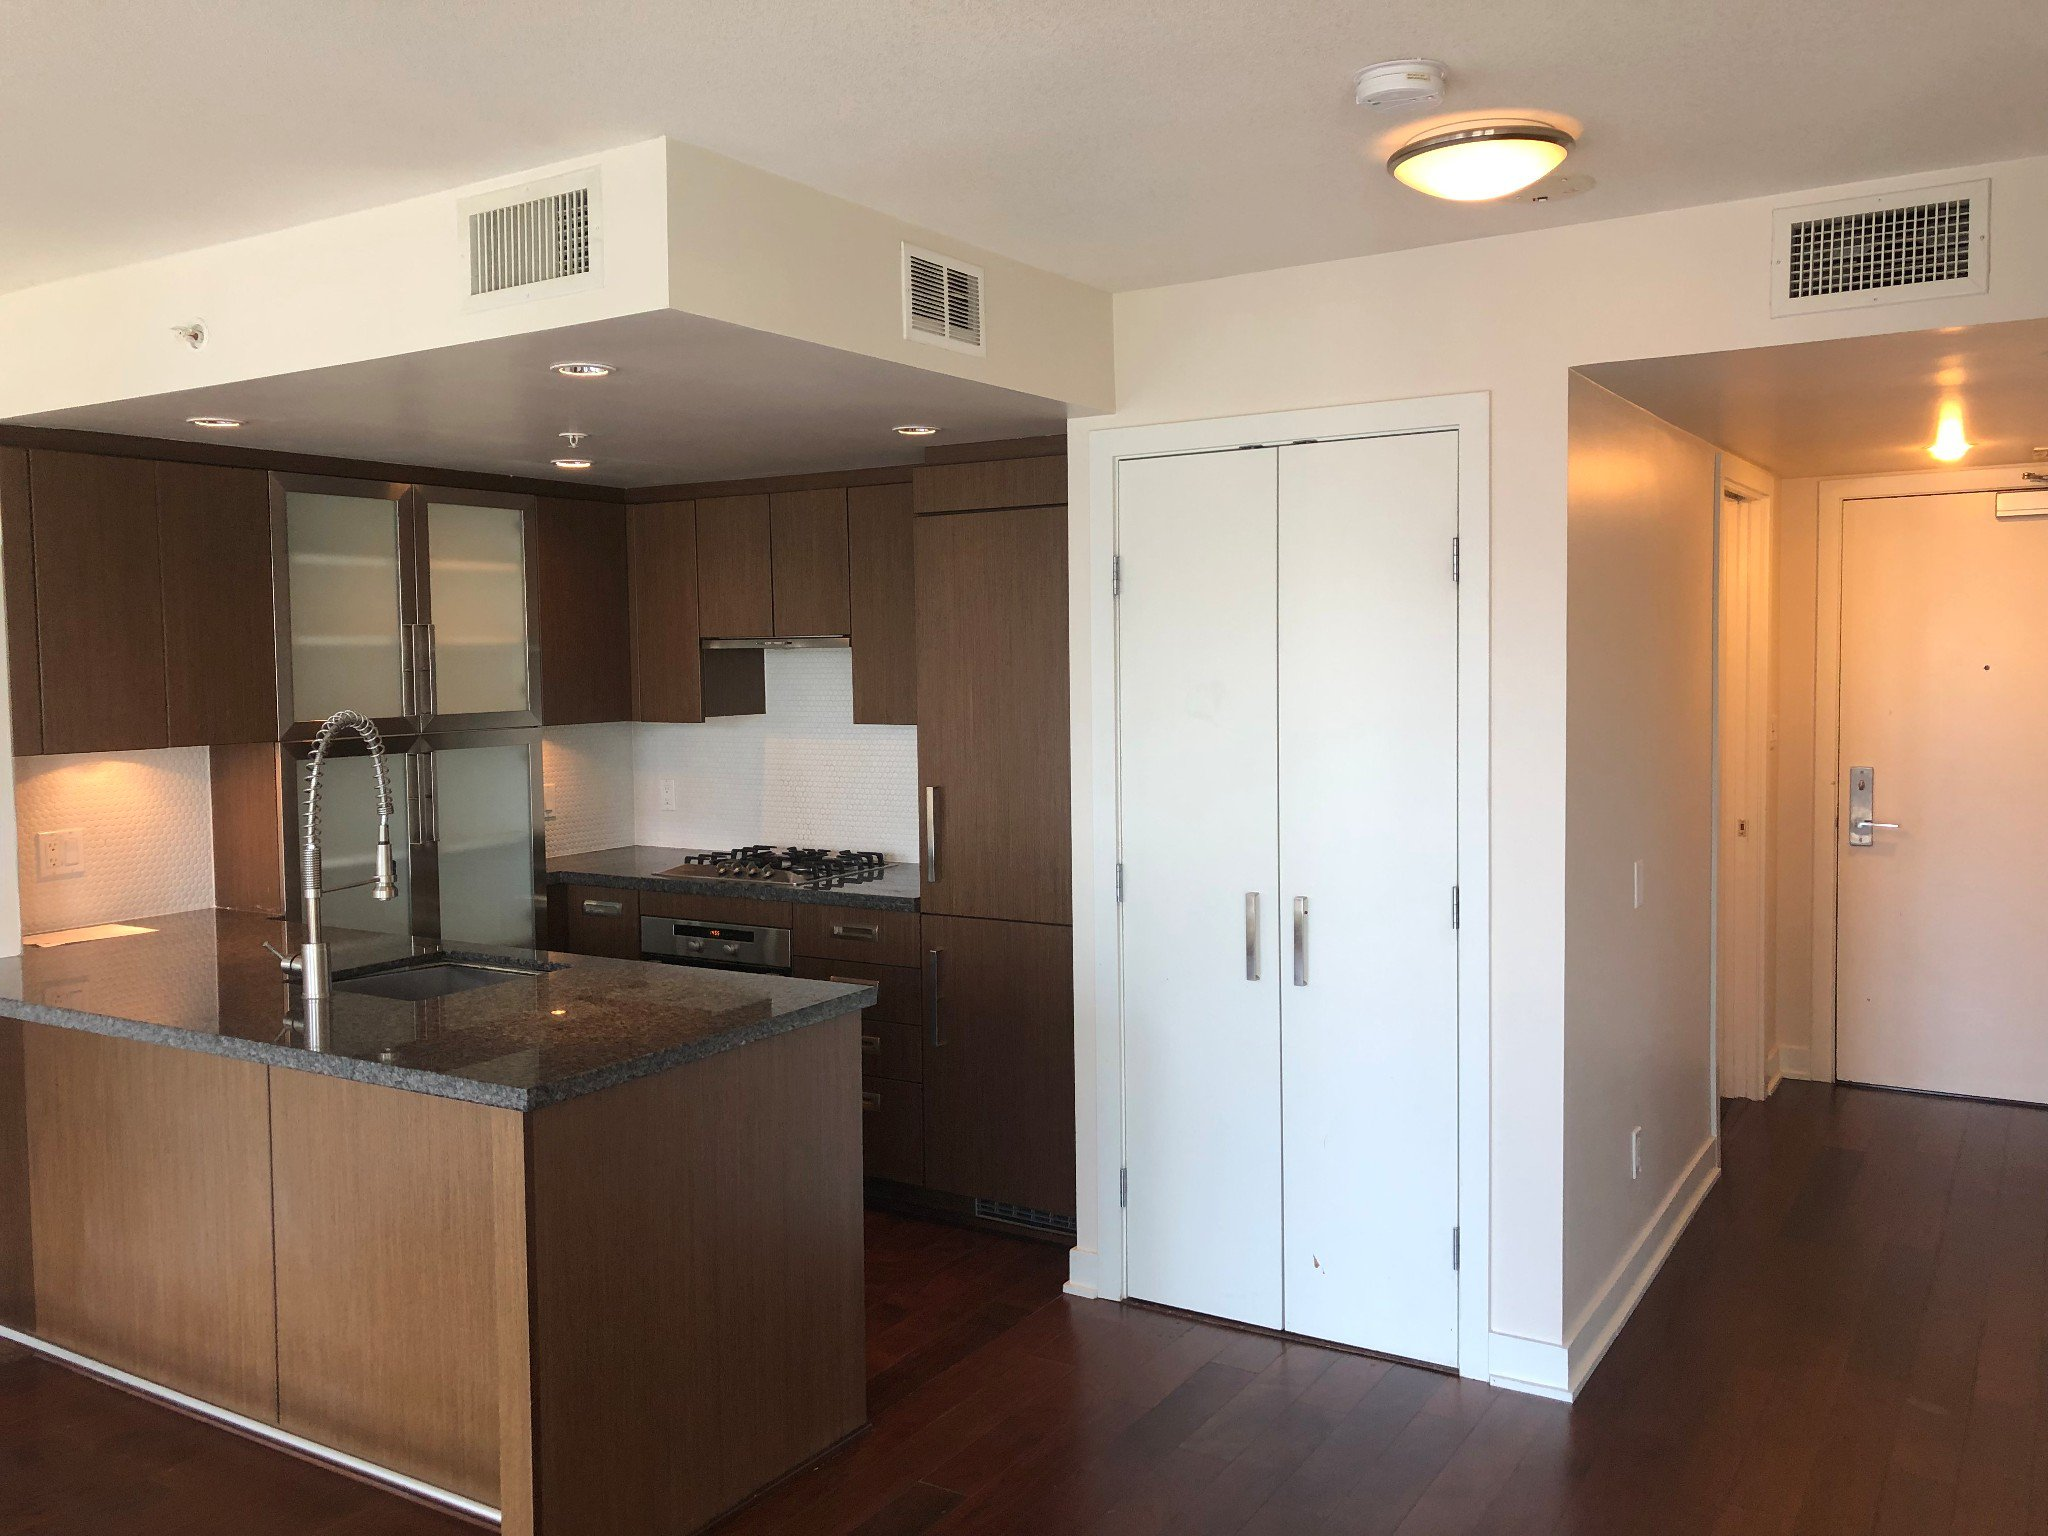 Photo 12: Photos: 1708-1055 Richards St in Vancouver: Yaletown Condo for rent (Downtown Vancouver)